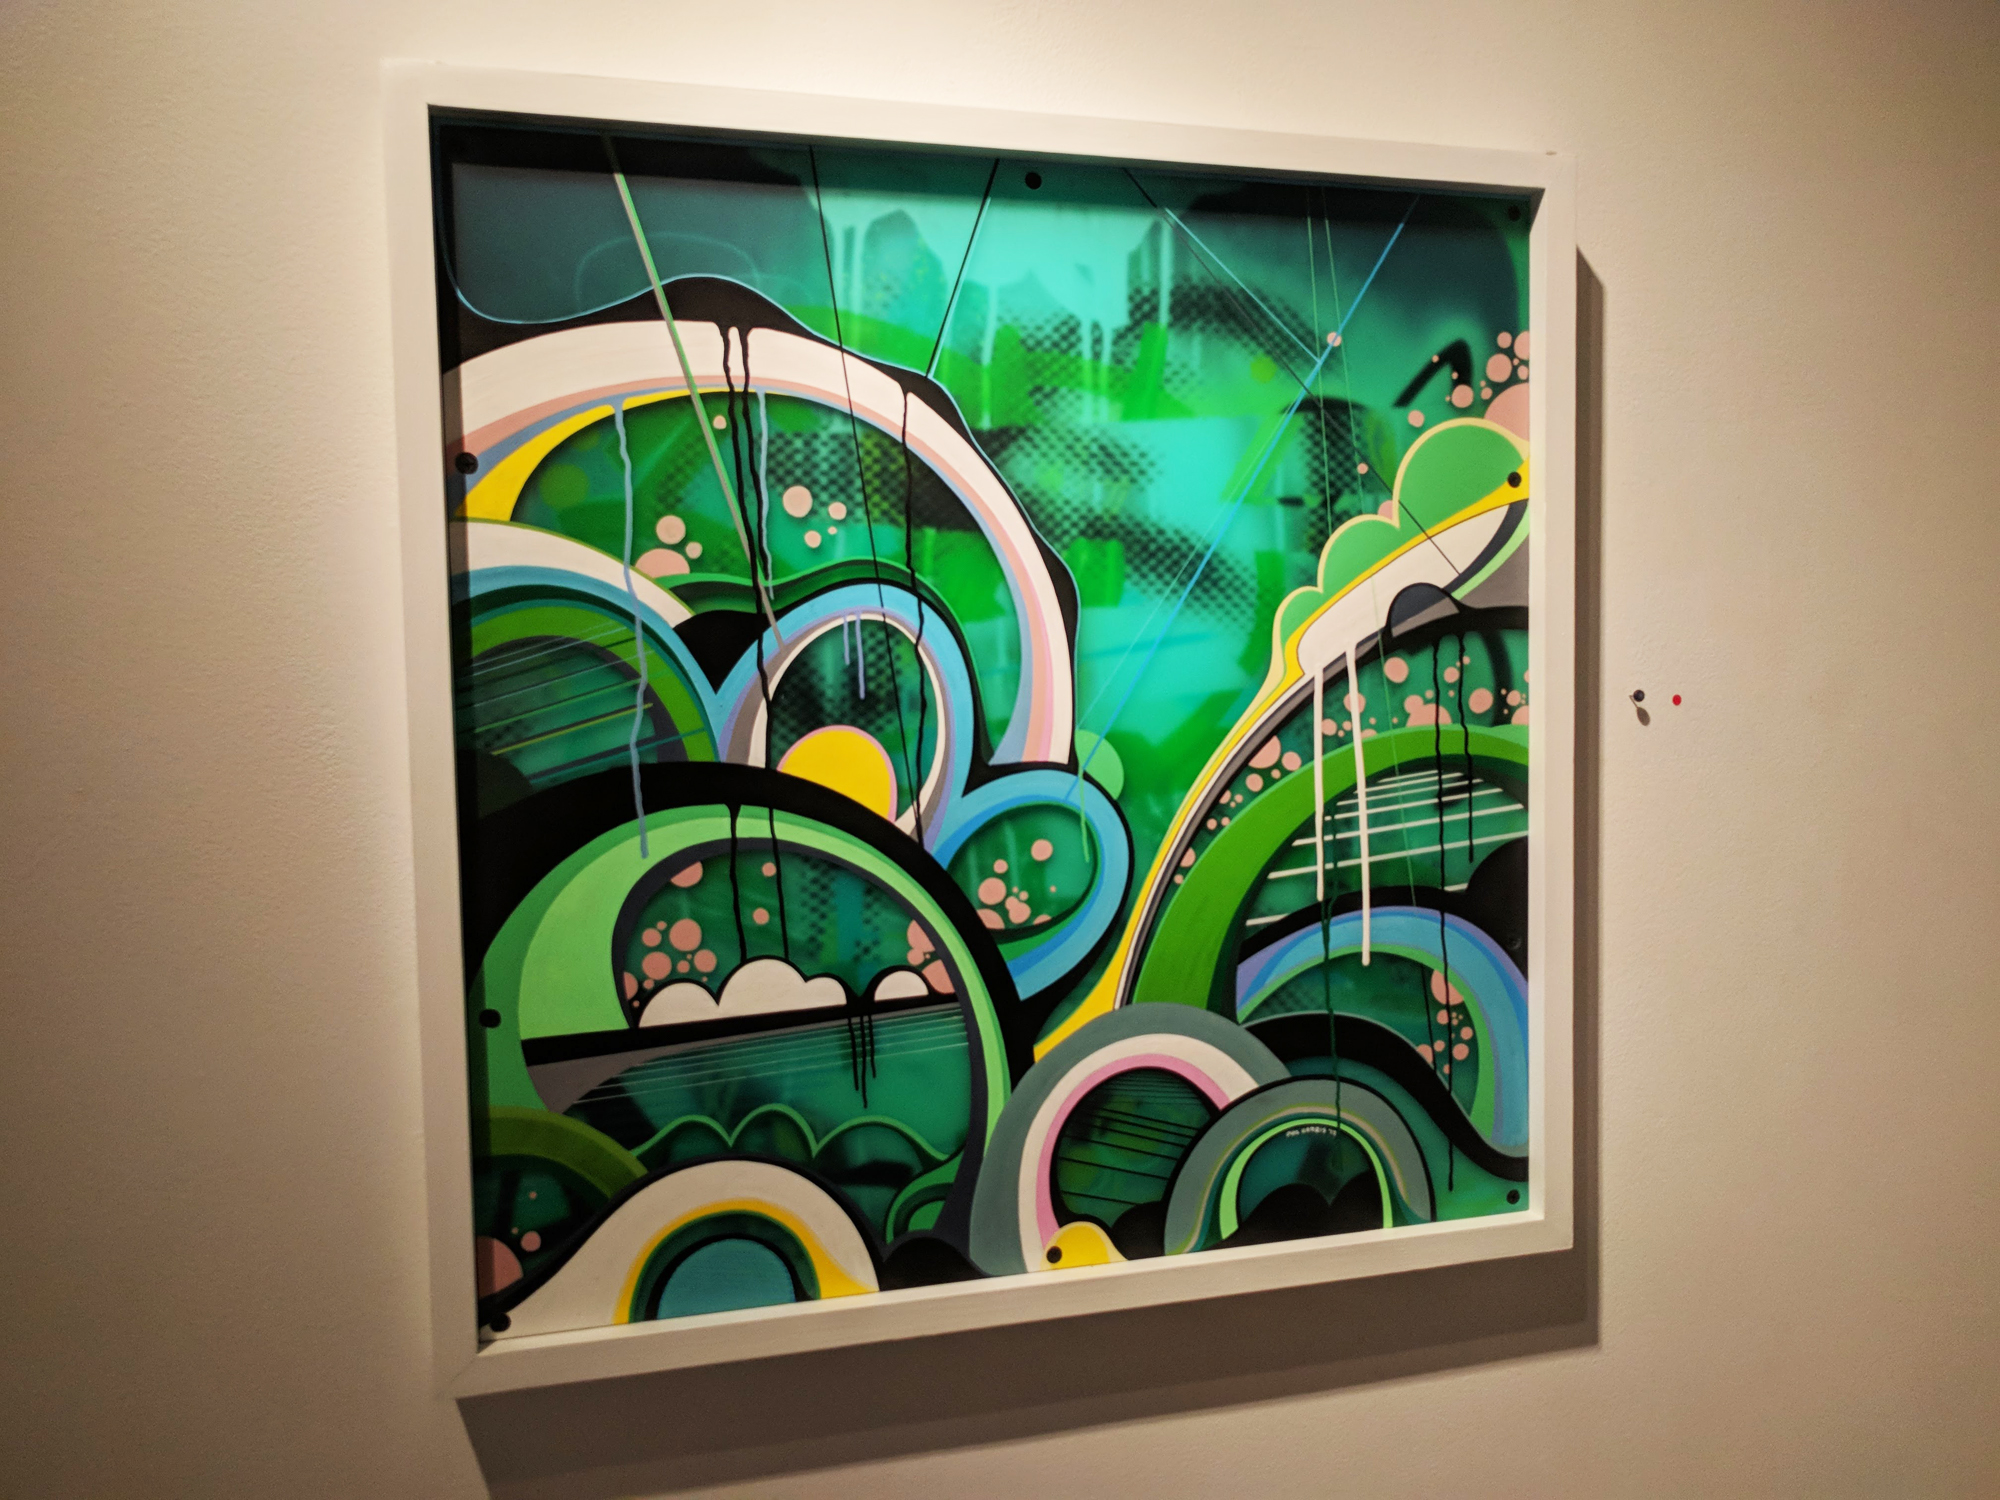 Phil Harris Untitled mixed media on double layered Plexiglas 23.5 x 23.5 inches PHA 005G